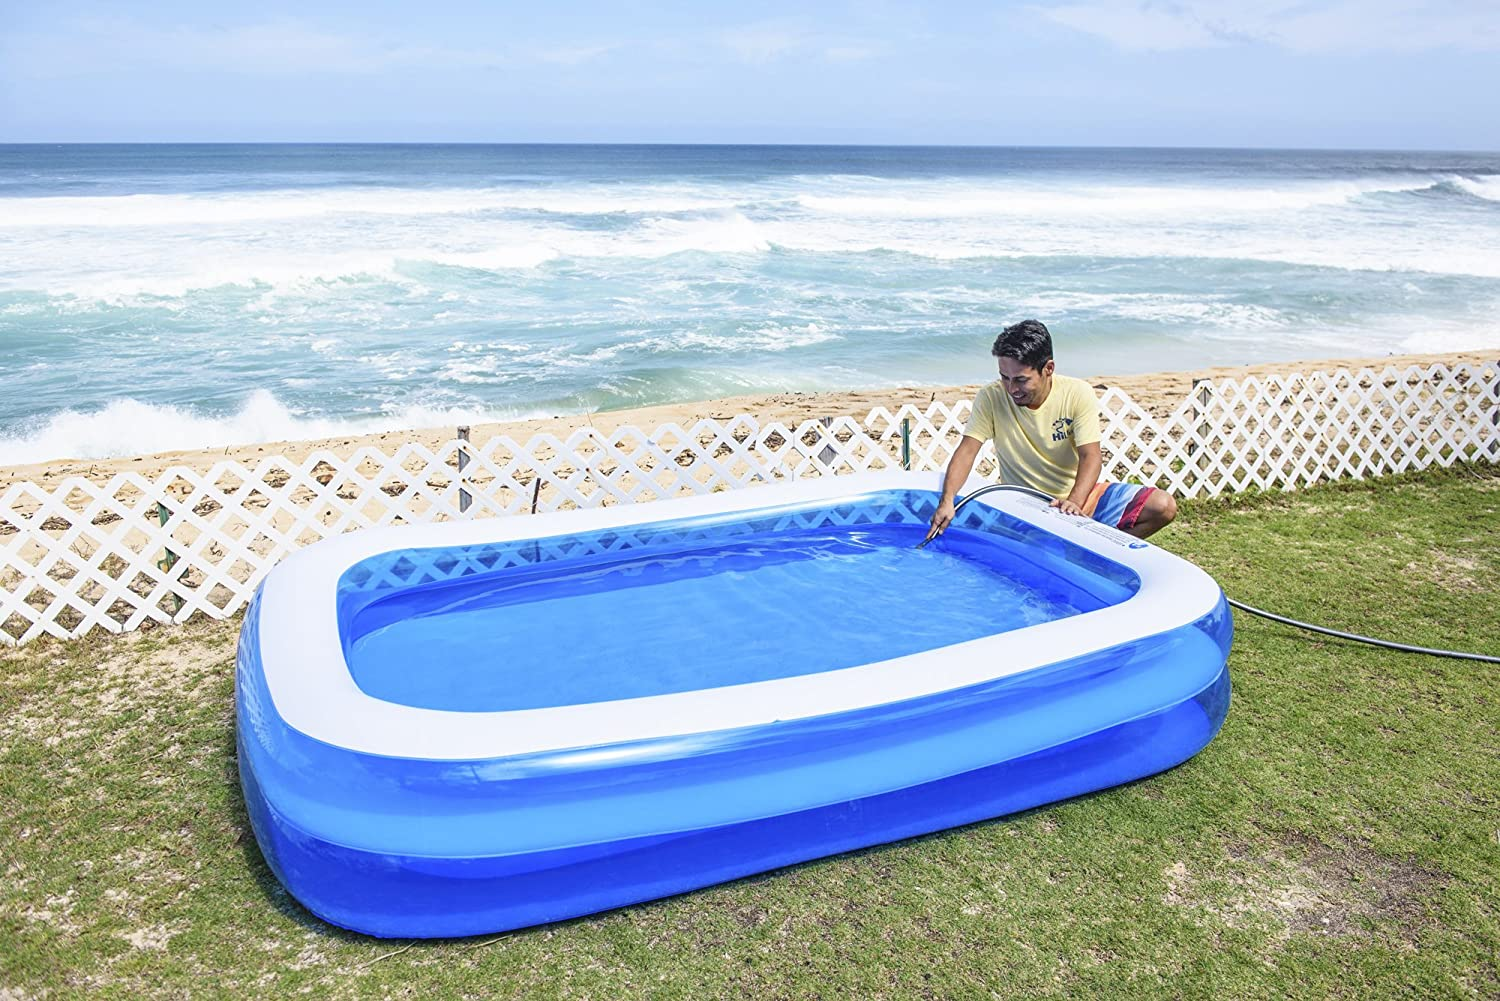 Blue 103 x 69 x 20 Jilong Rectangular Family Inflatable Pool for Ages 6+